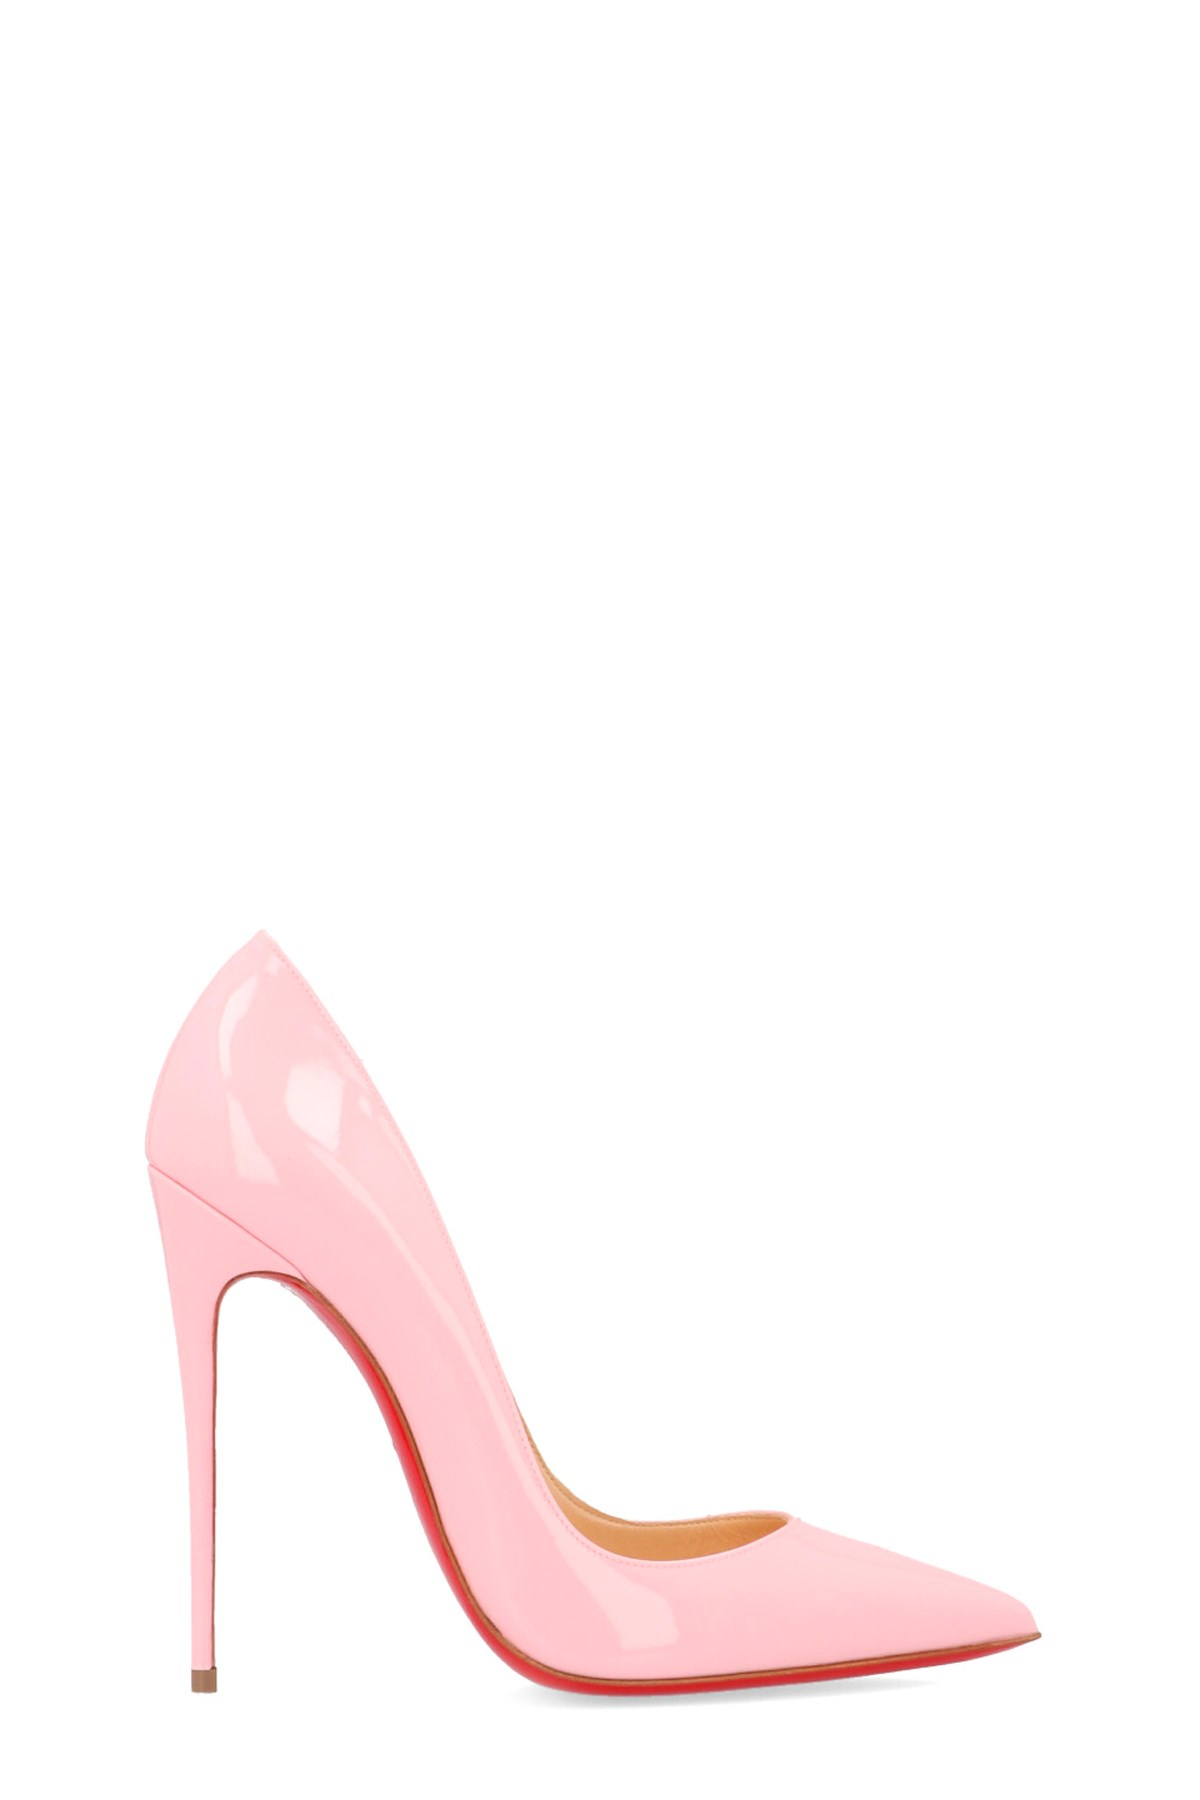 ef4aa80dfce2 christian louboutin  So Kate  Pumps available on julian-fashion.com ...